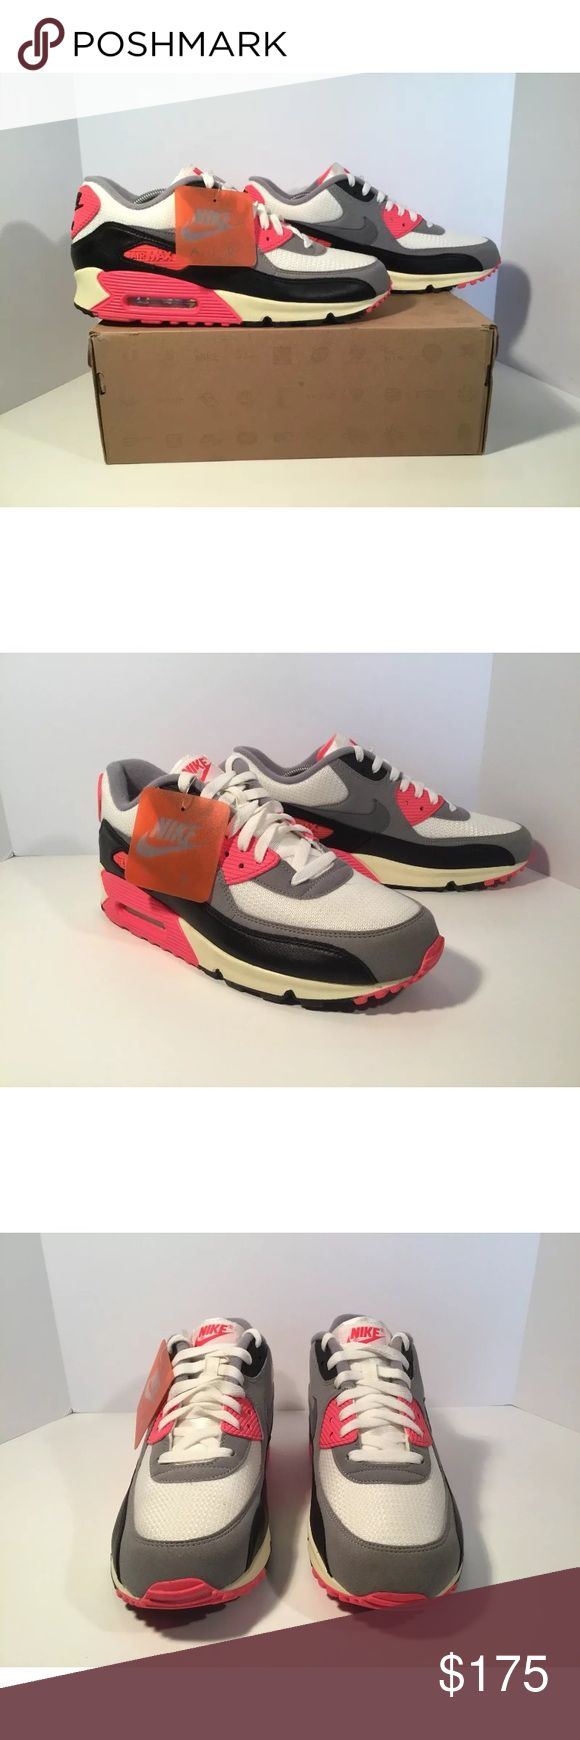 Nike Air Max 90 OG 2012 Item details:   -Nike brand  -Air Max 90  -2012  -infrared  -in great condition  -Men's Size 10   All my shoes are 100% authentic. Buyer satisfaction is very important to me and I will always do my best to make sure you have a good experience when purchasing my items. I sell many hard to find, past season, and popular shoes at discount prices. If I have the box for the shoes, I always include it in the pictures. Nike Shoes Athletic Shoes